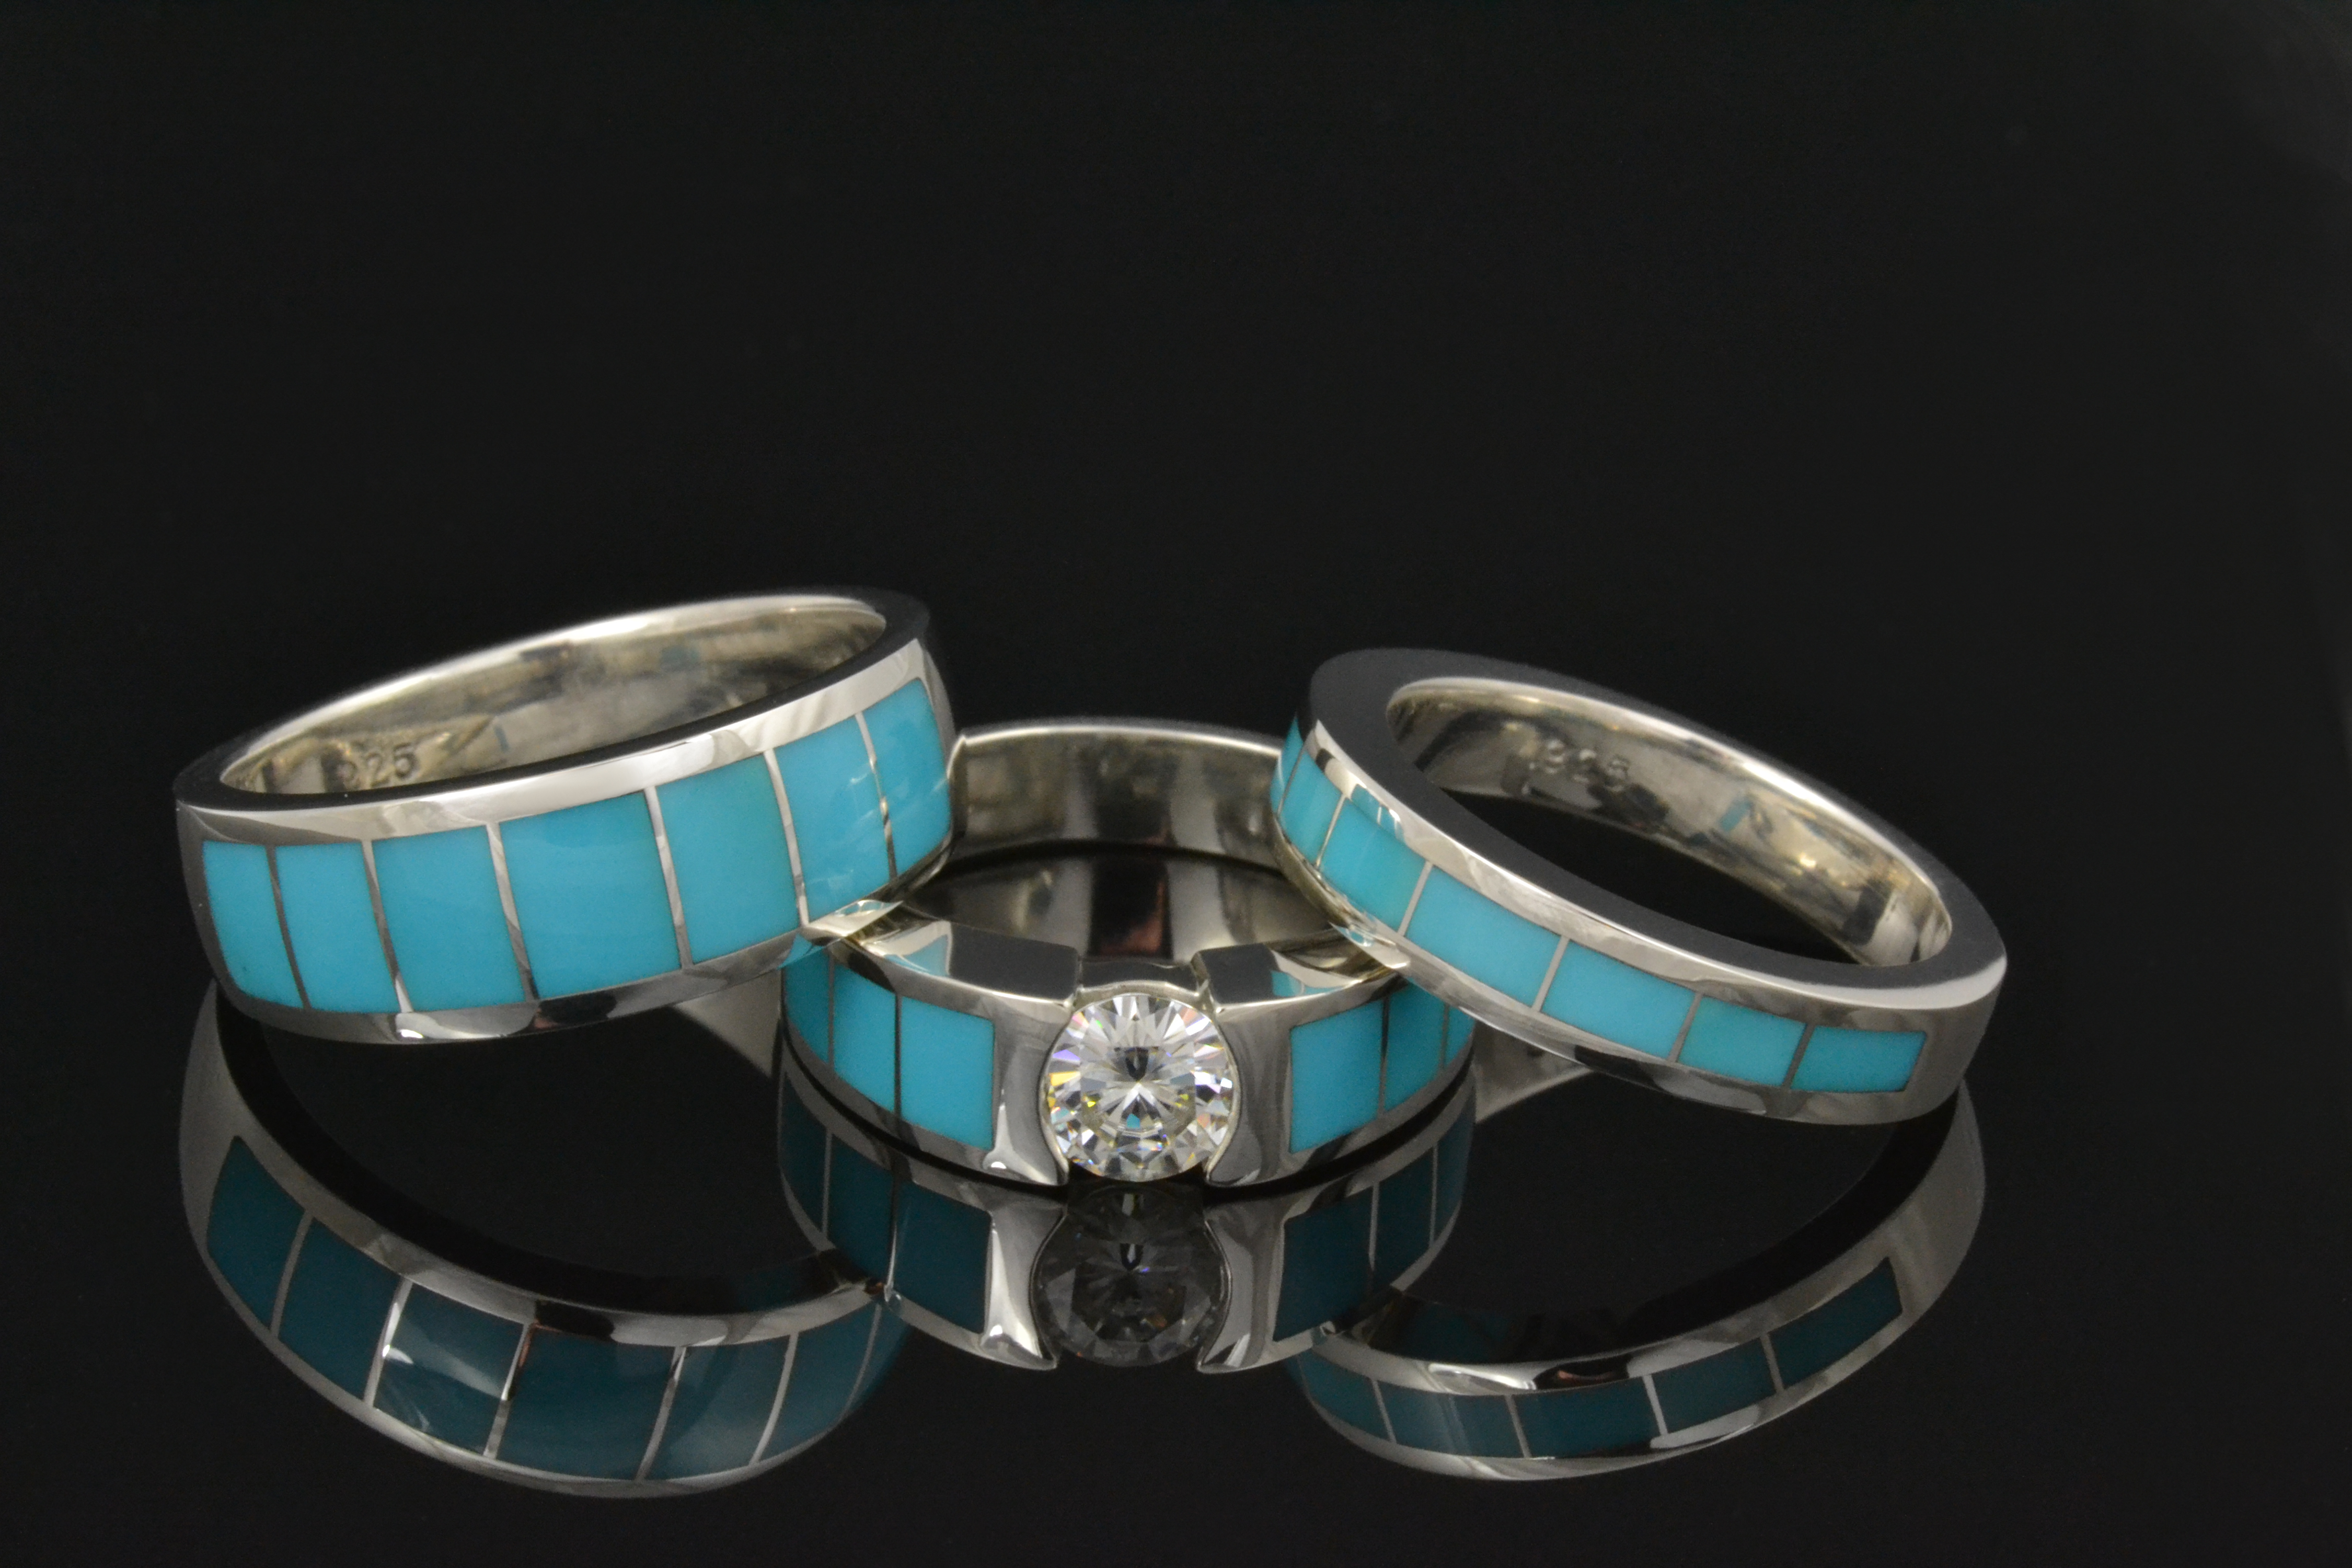 new turquoise wedding ring sets available opal wedding ring sets Turquoise and moissanite wedding and engagement ring set